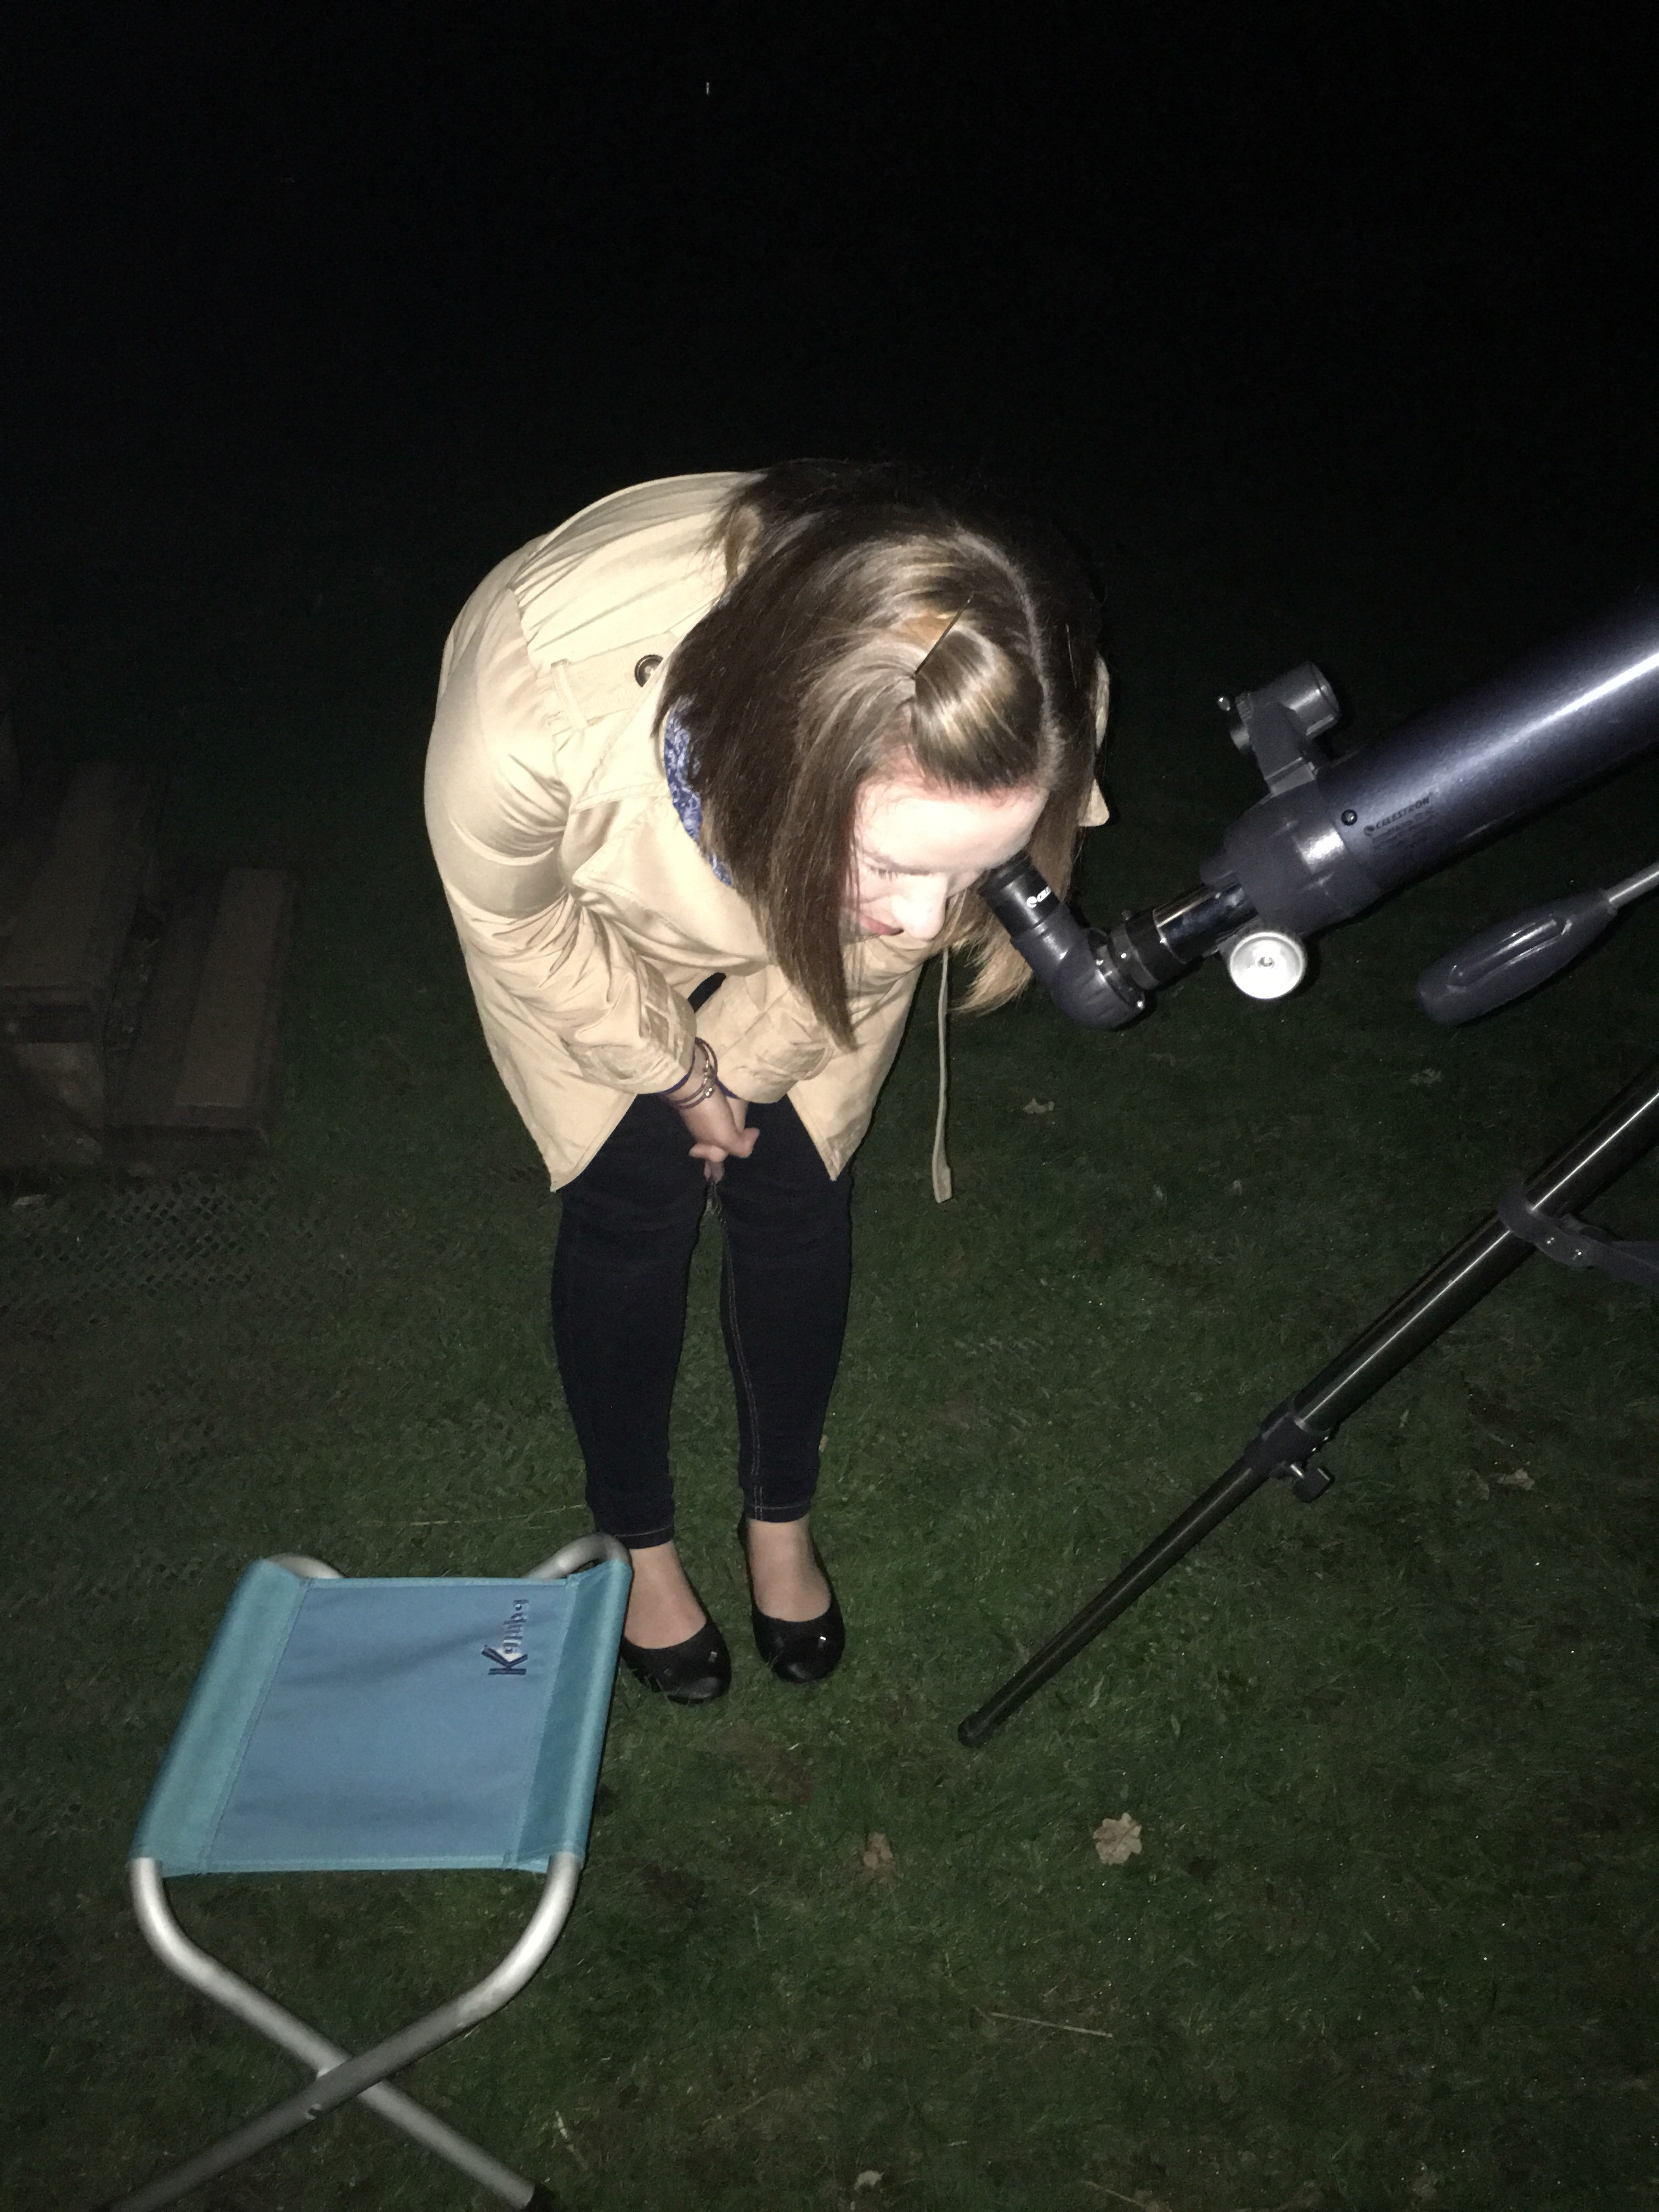 Me finding the moon